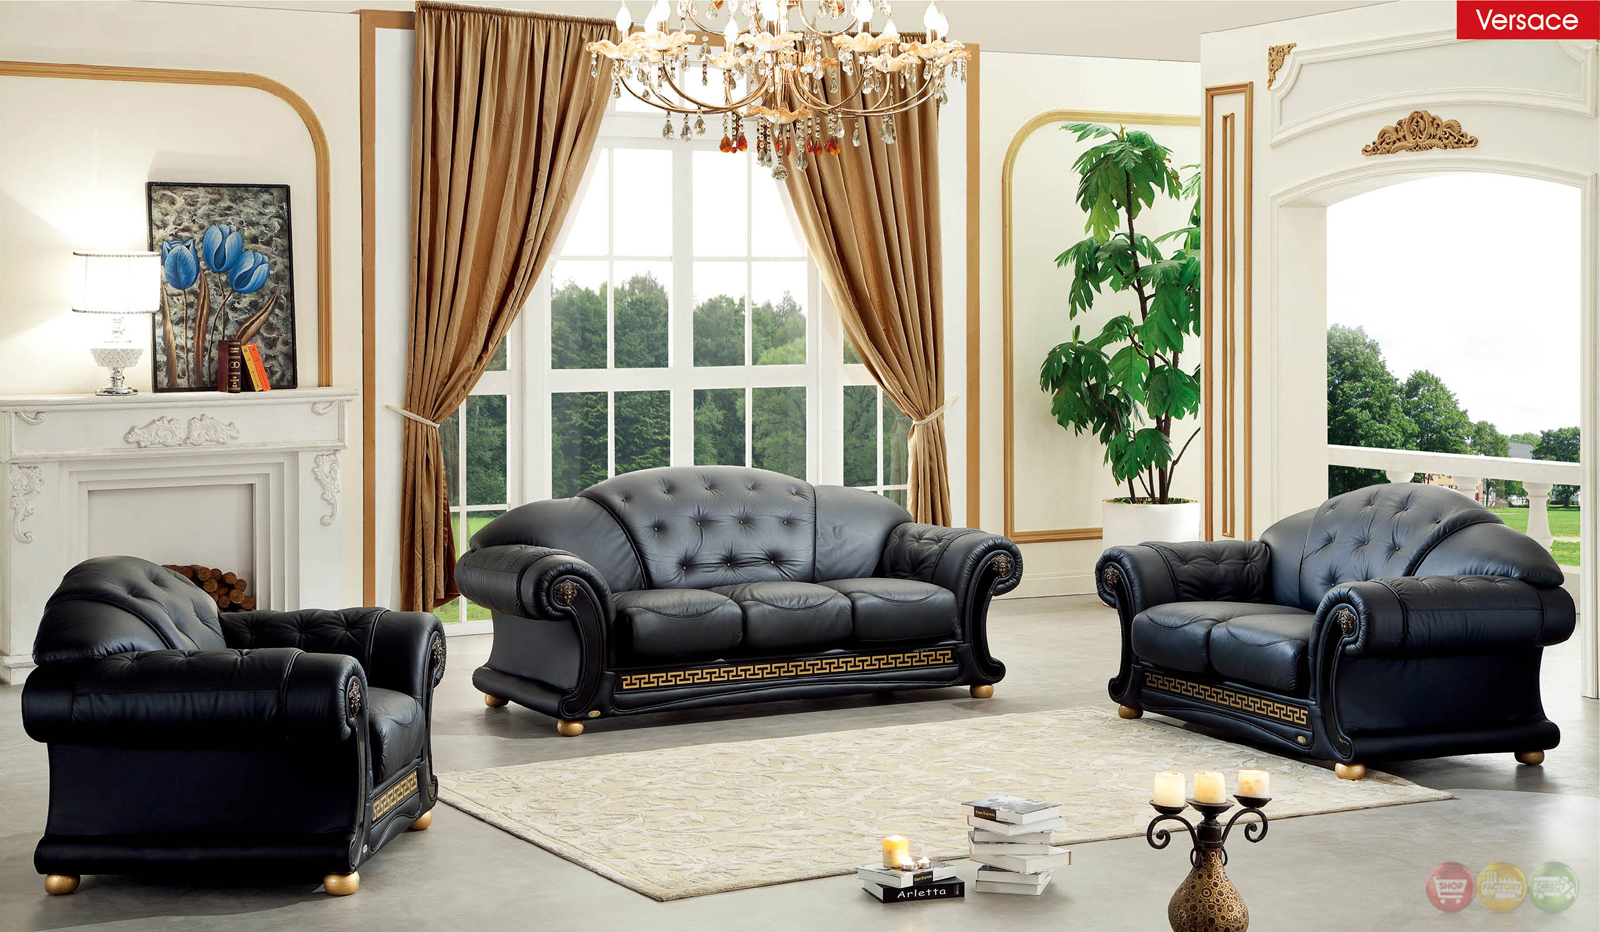 Black Living Room Chair Versace Living Room Set Black Leather Living Room Set